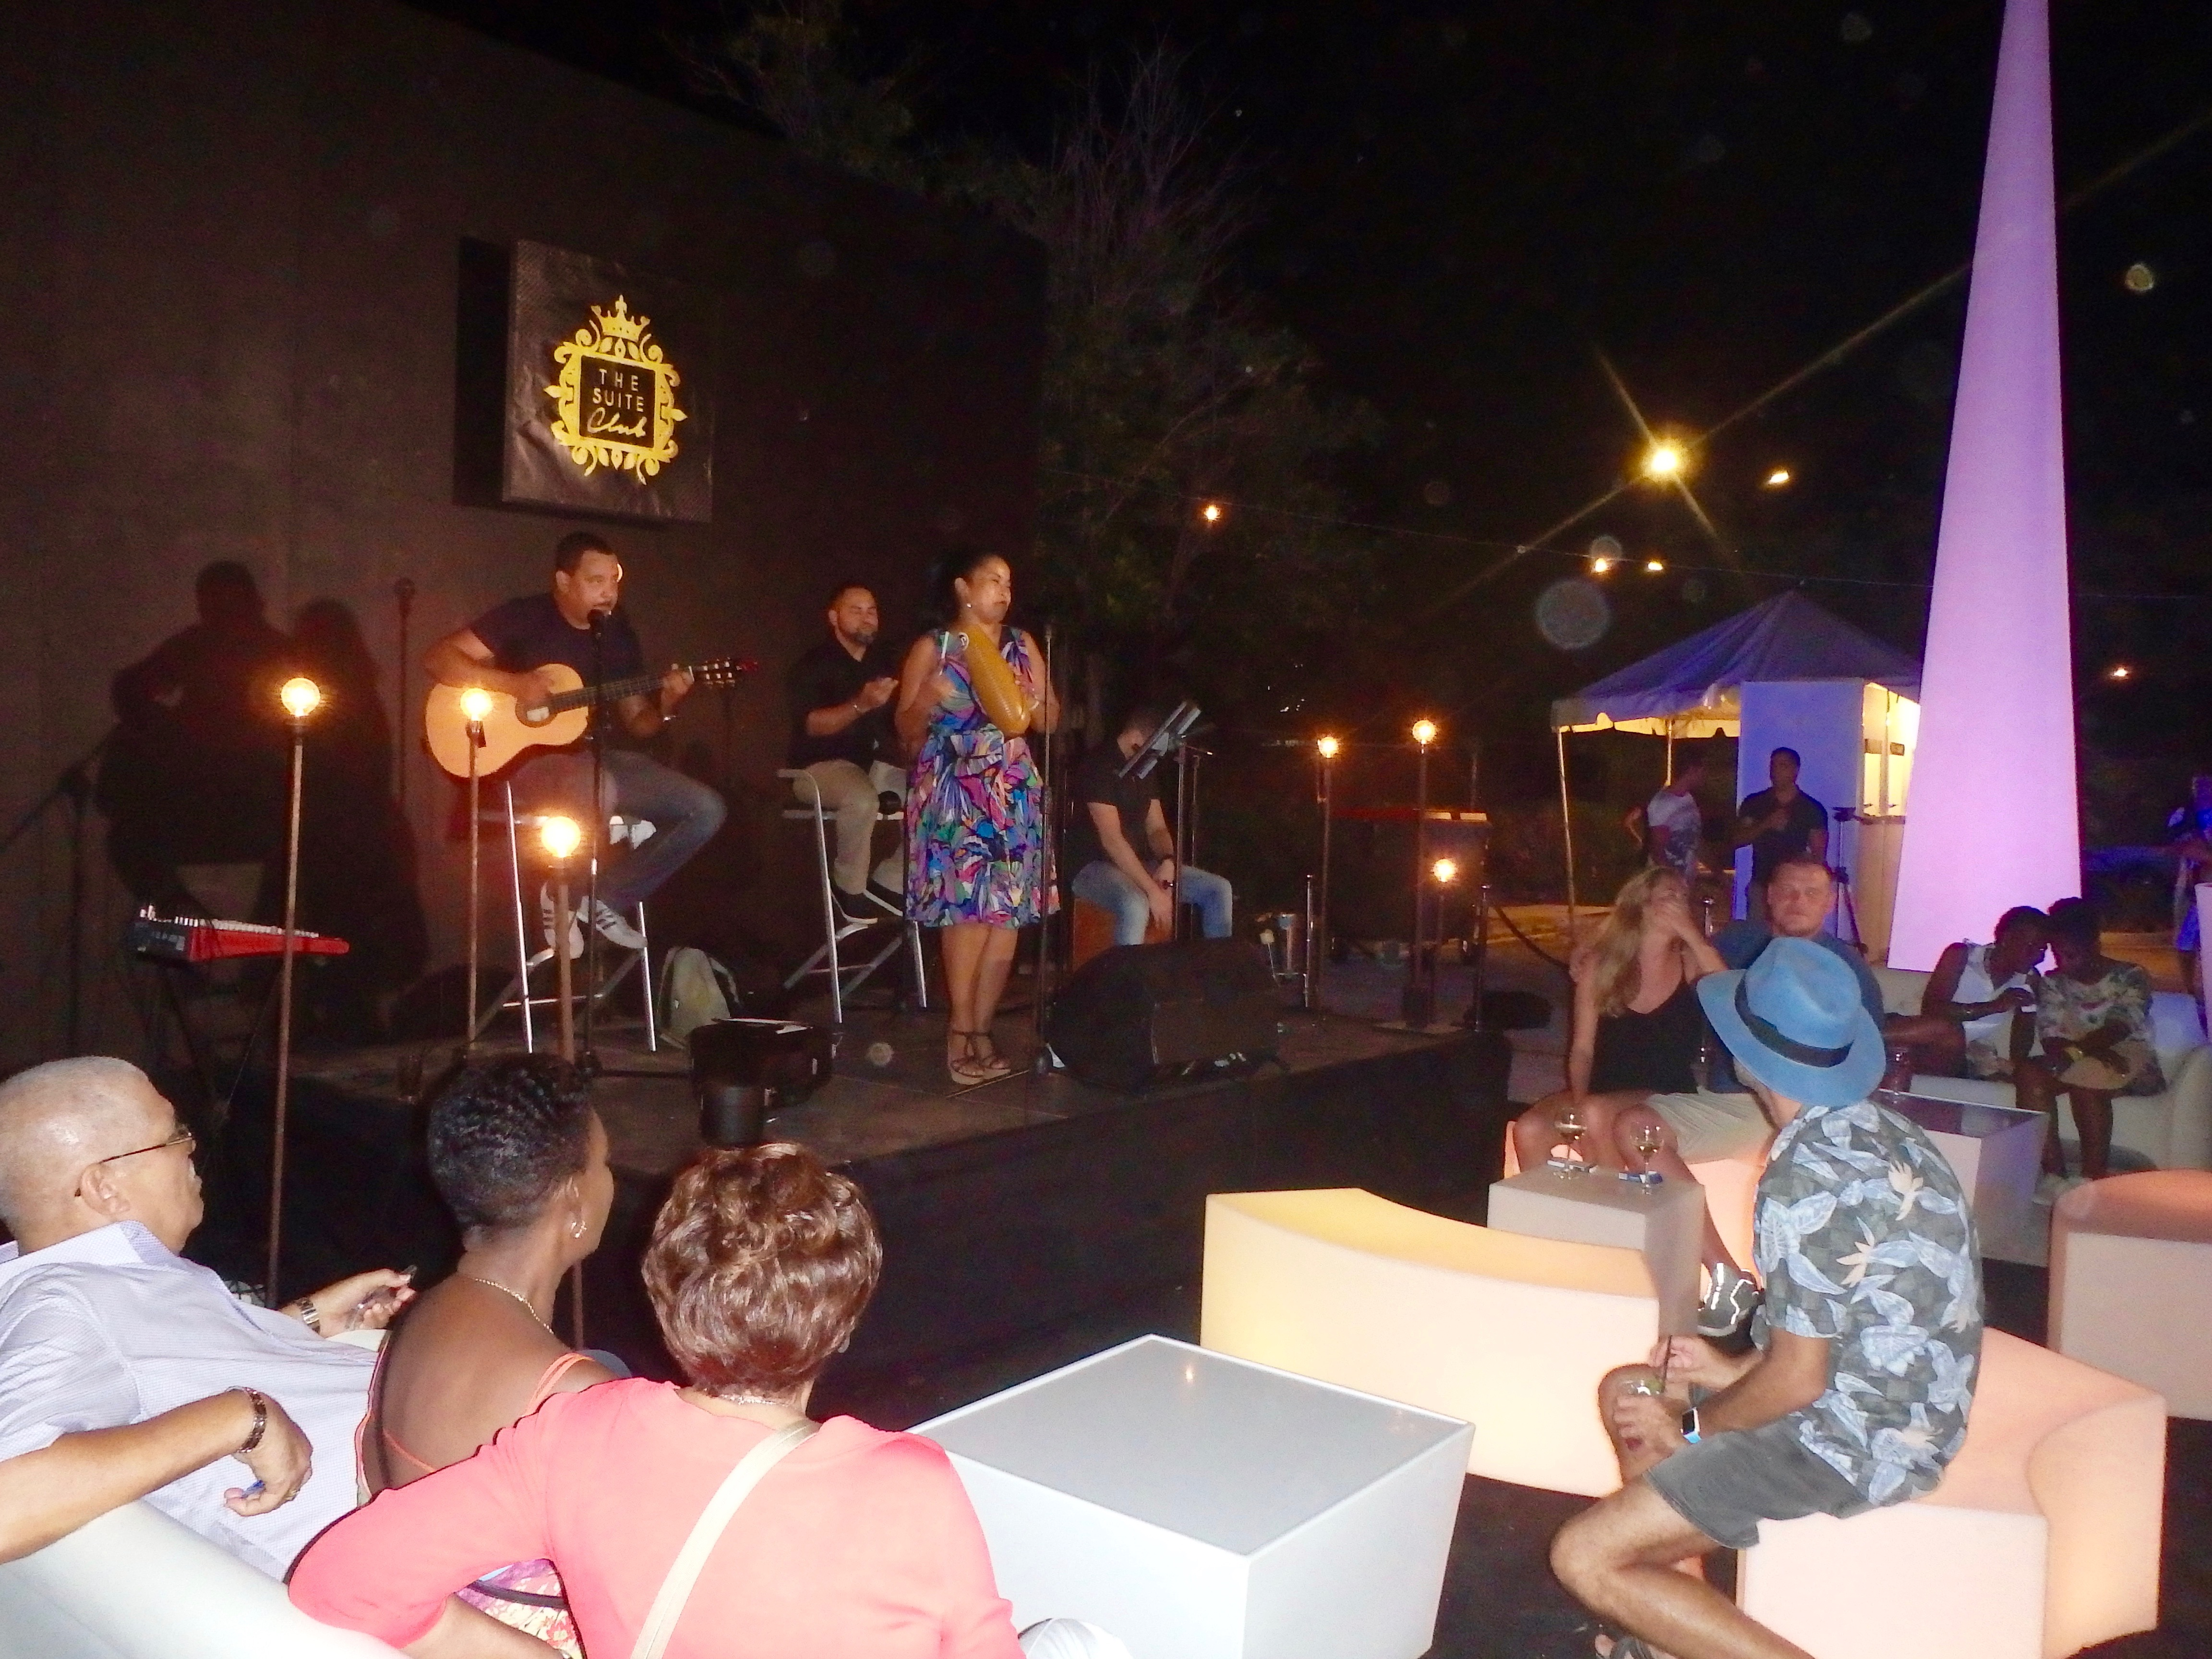 live entertainment in curacao where to hear live music in curacao best nightlife in curacao top events in curacao